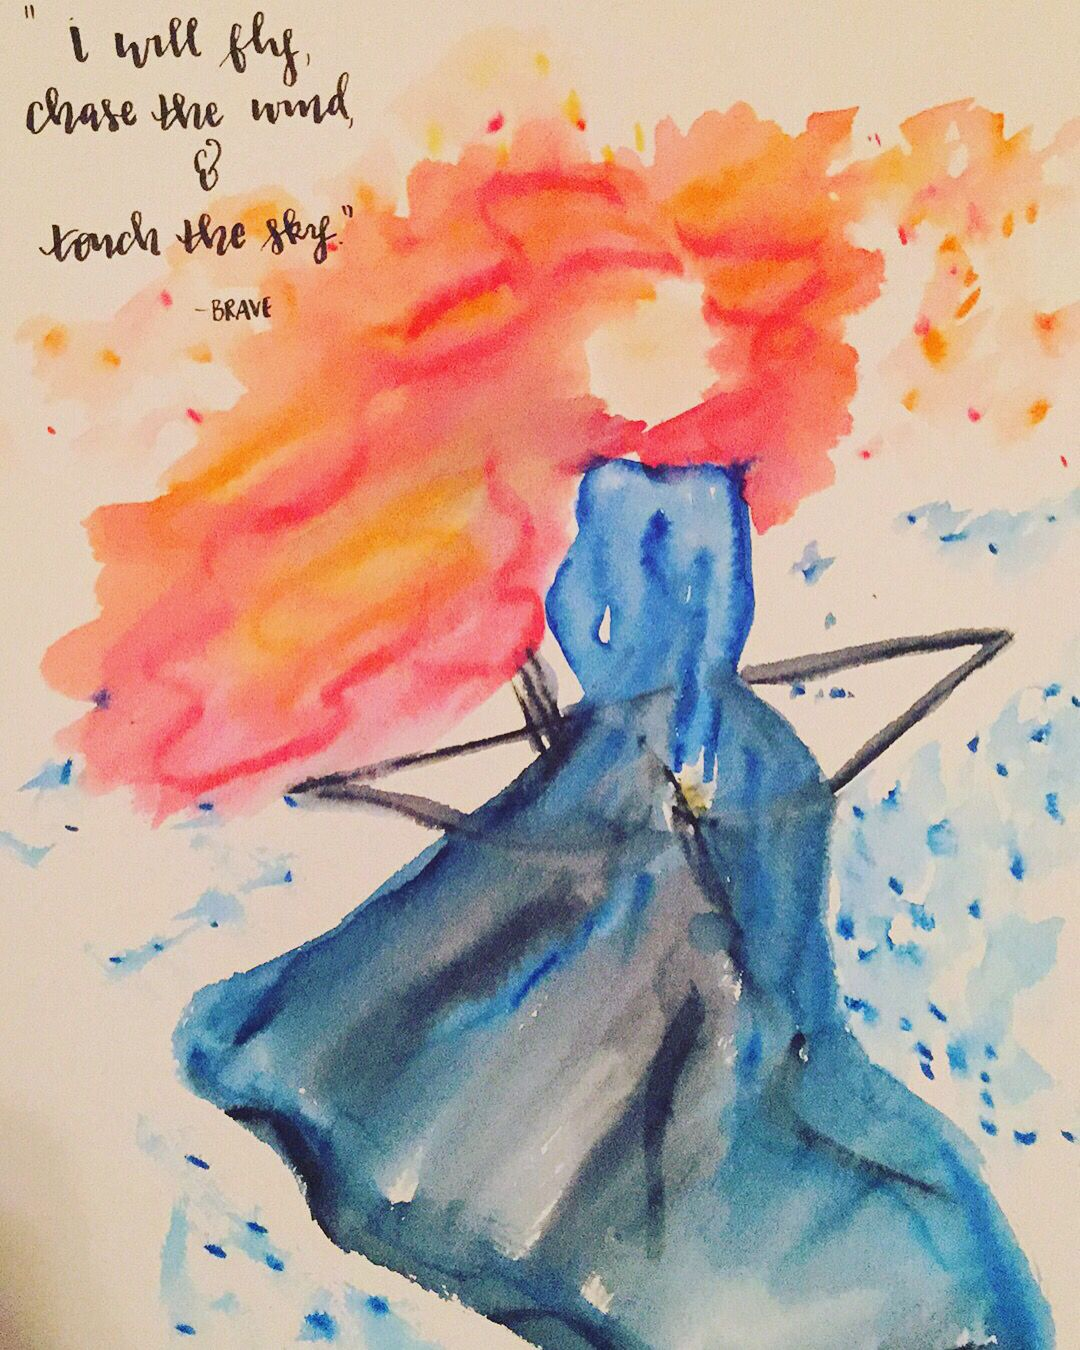 brave watercolor by bezawesome - photo #11